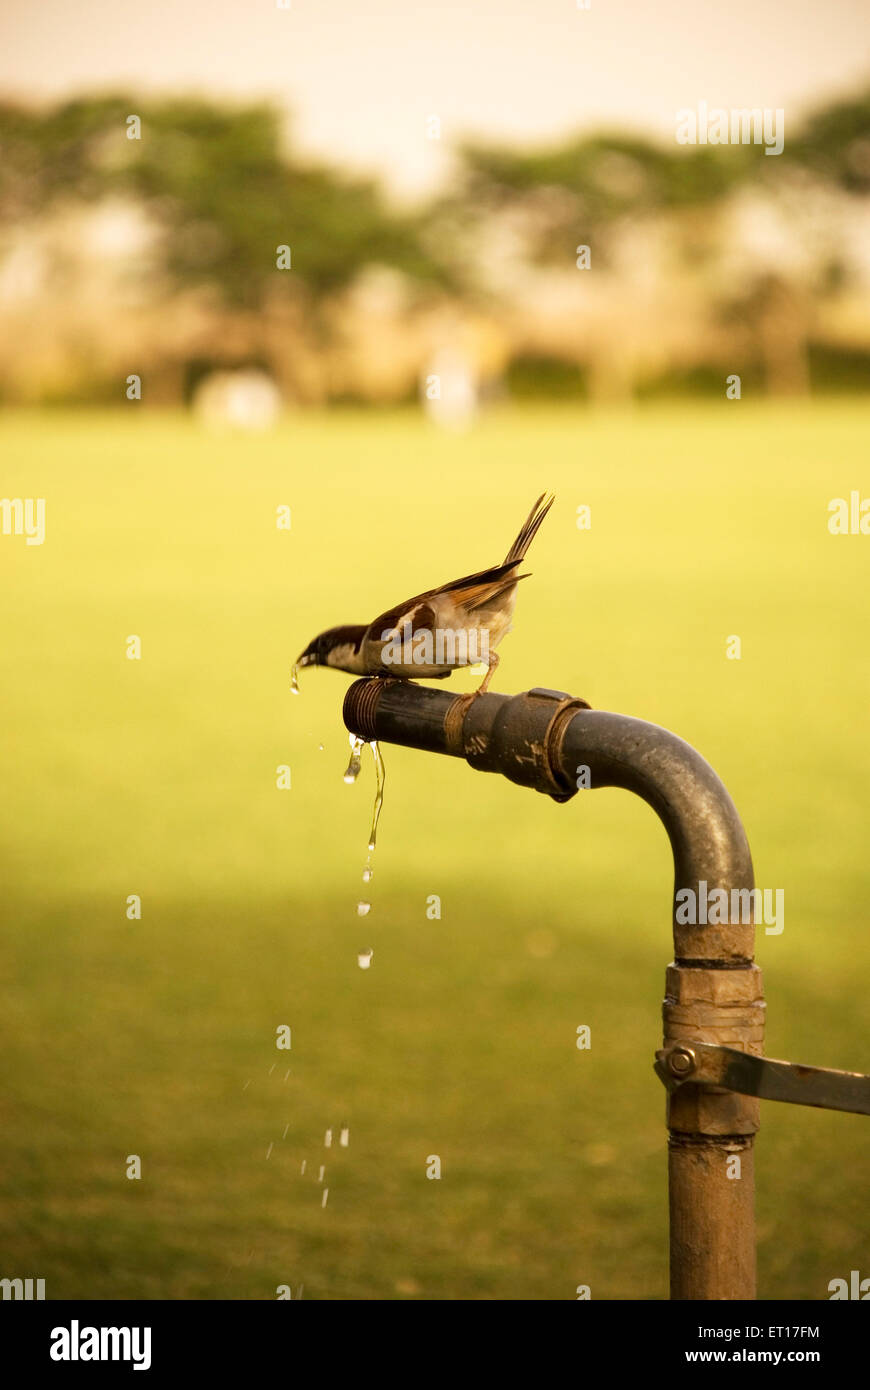 Thirsty sparrow drinking water - Stock Image